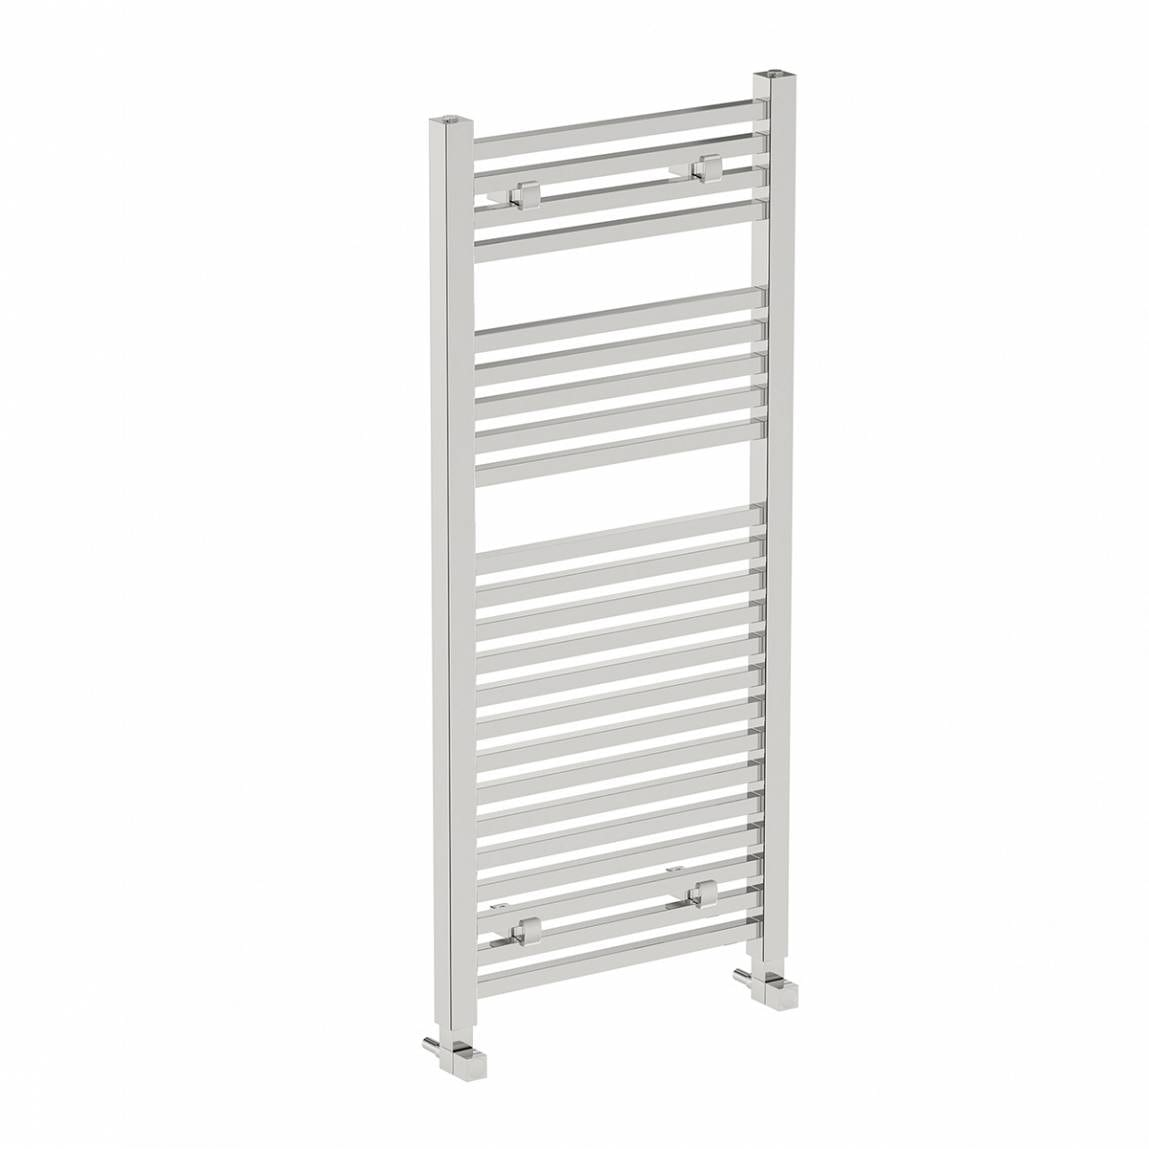 Orchard Wye heated towel rail 1200 x 490